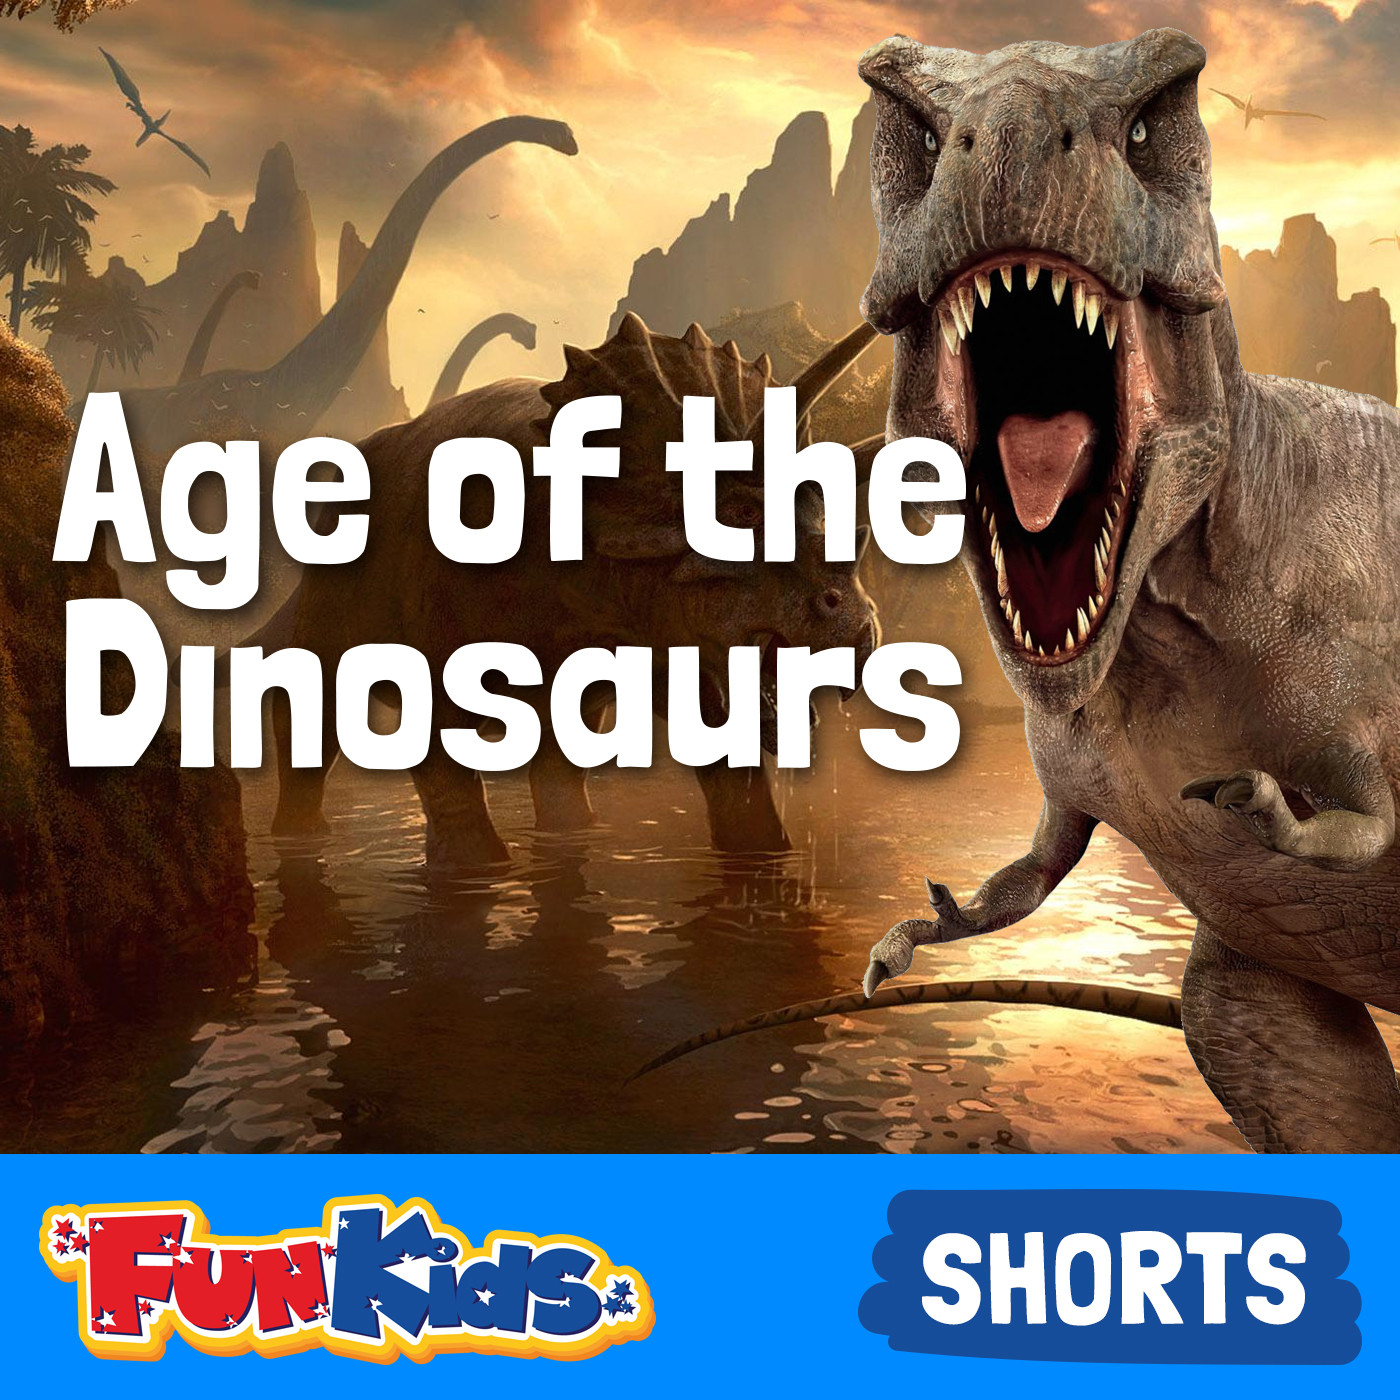 <![CDATA[Age of the Dinosaur from Fun Kids Radio]]>